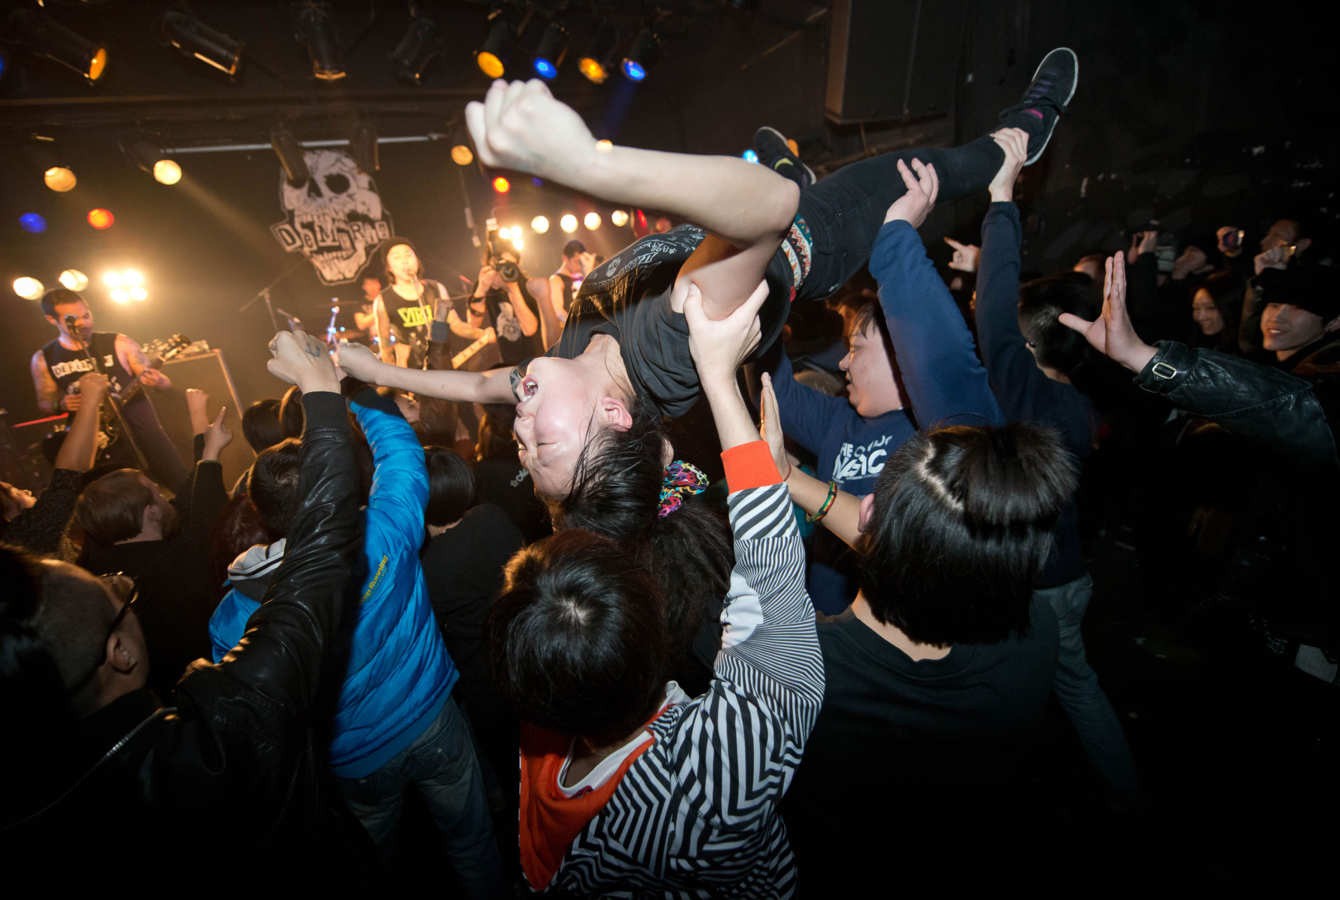 To See Chinese Punks Lose Their Minds, Hit Up These Beijing Livehouses